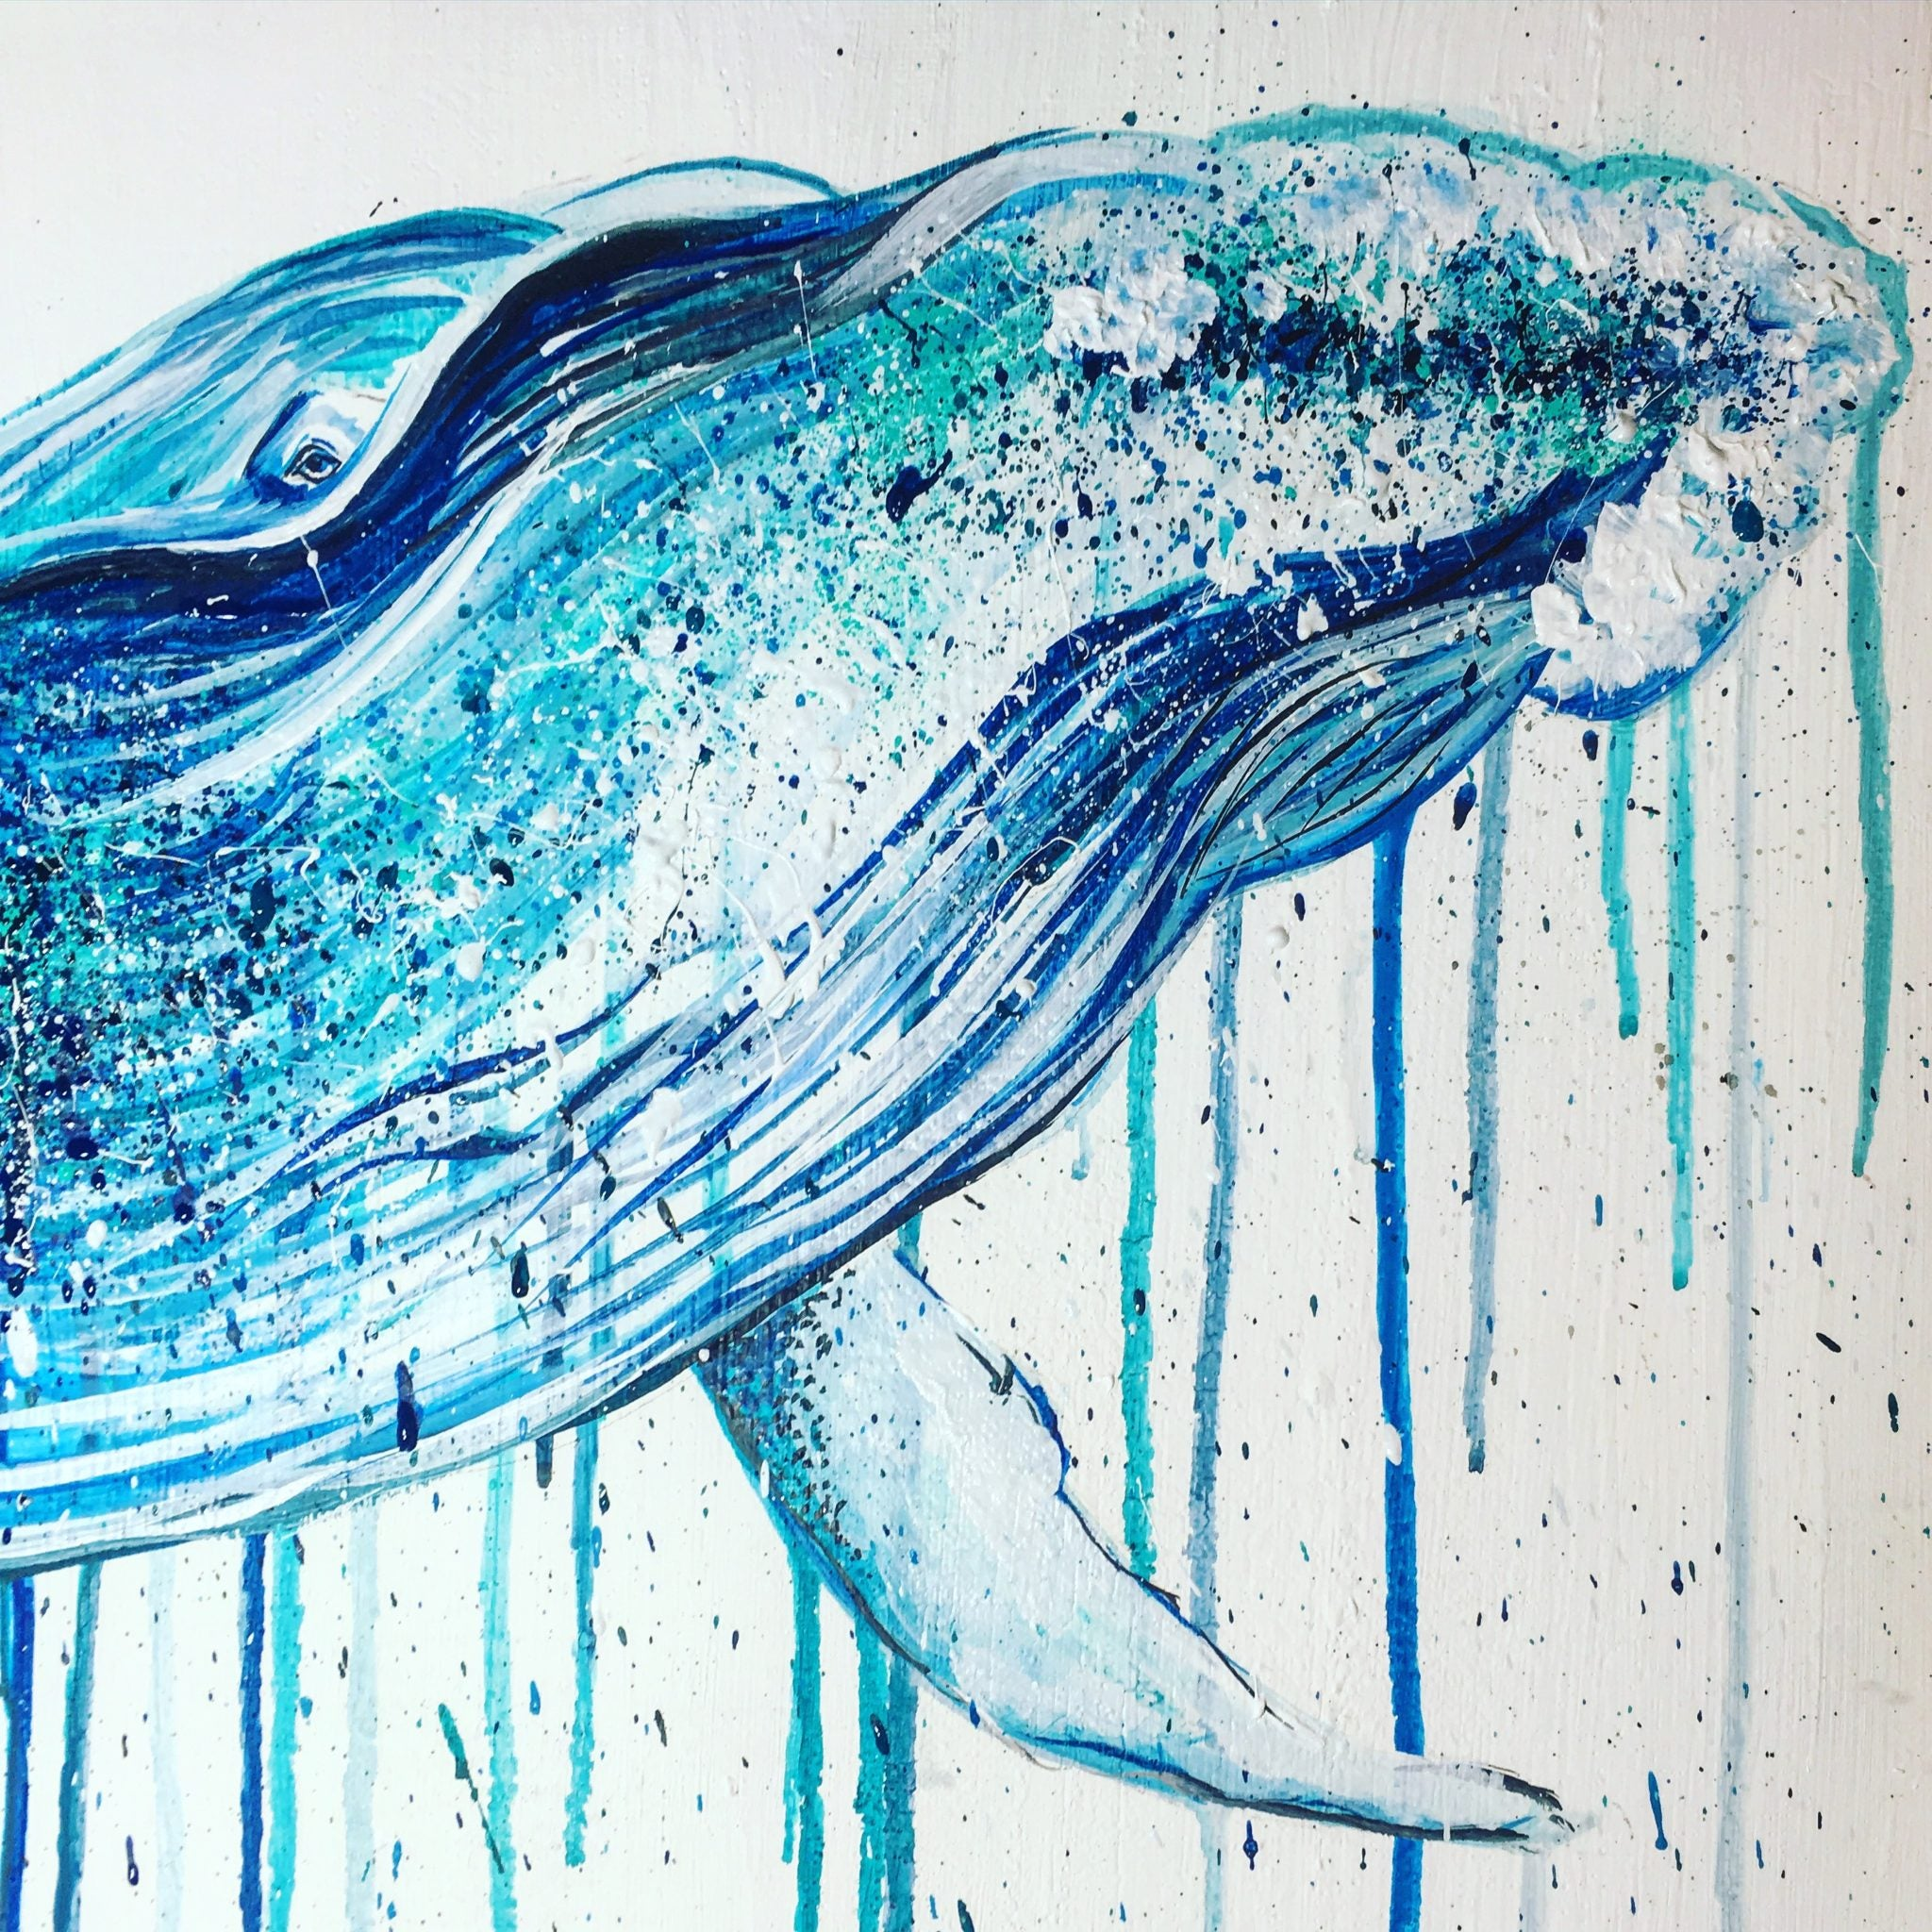 hump back blue whale sophie long art